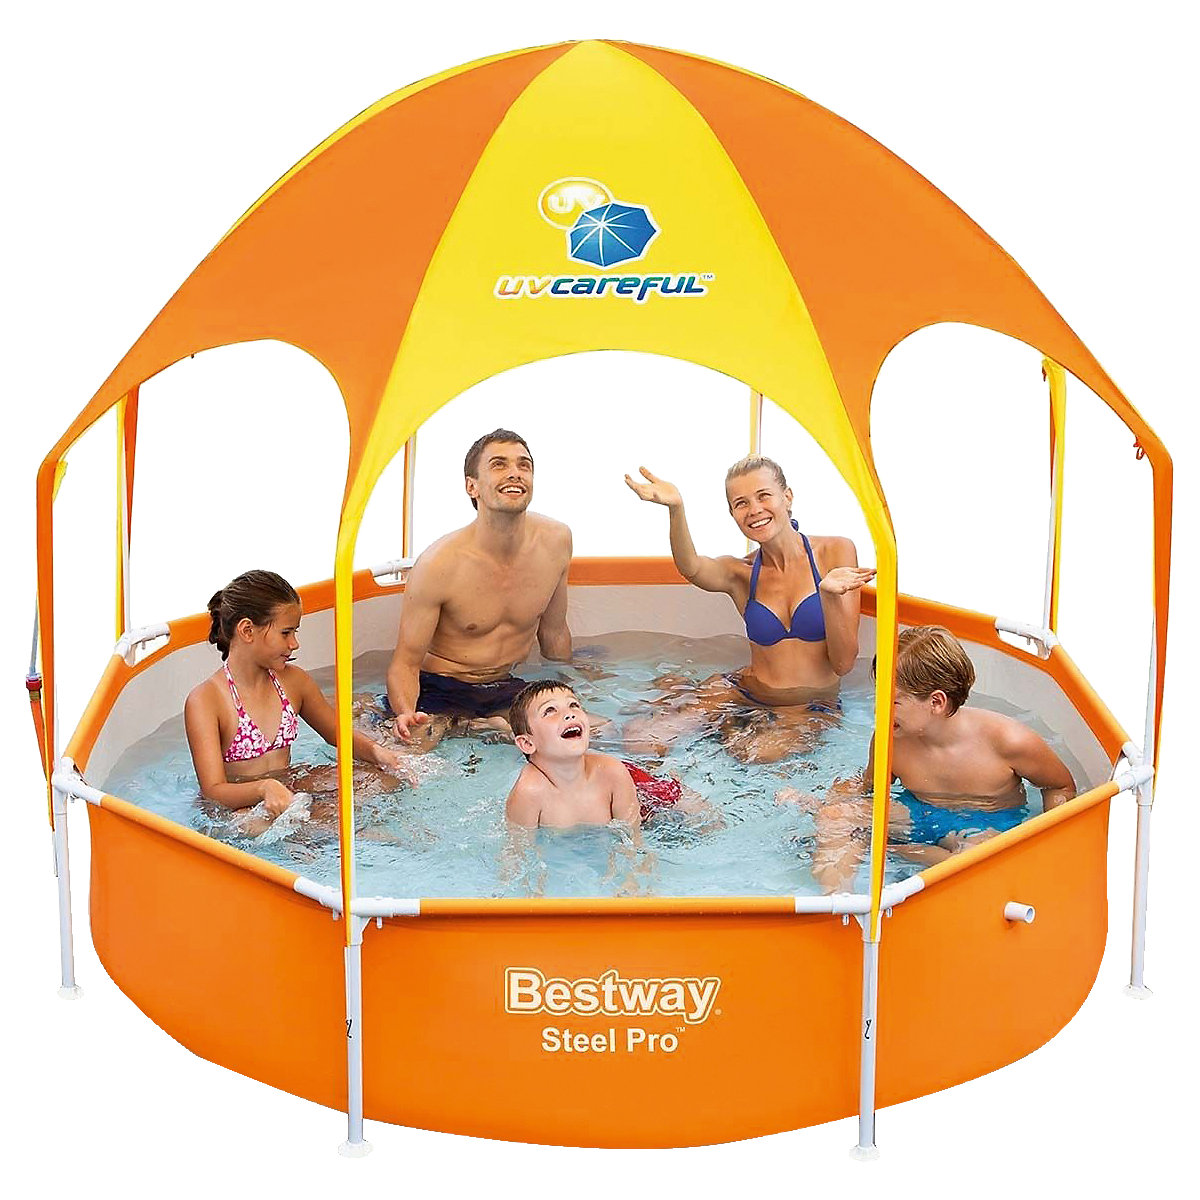 BESTWAY Swimming Pool 4292350 inflatable pools Accessories Activity & Gear tub Kids Baby for children large adult swimming pool children swimming pools different size pvc pool inflate swimming tools